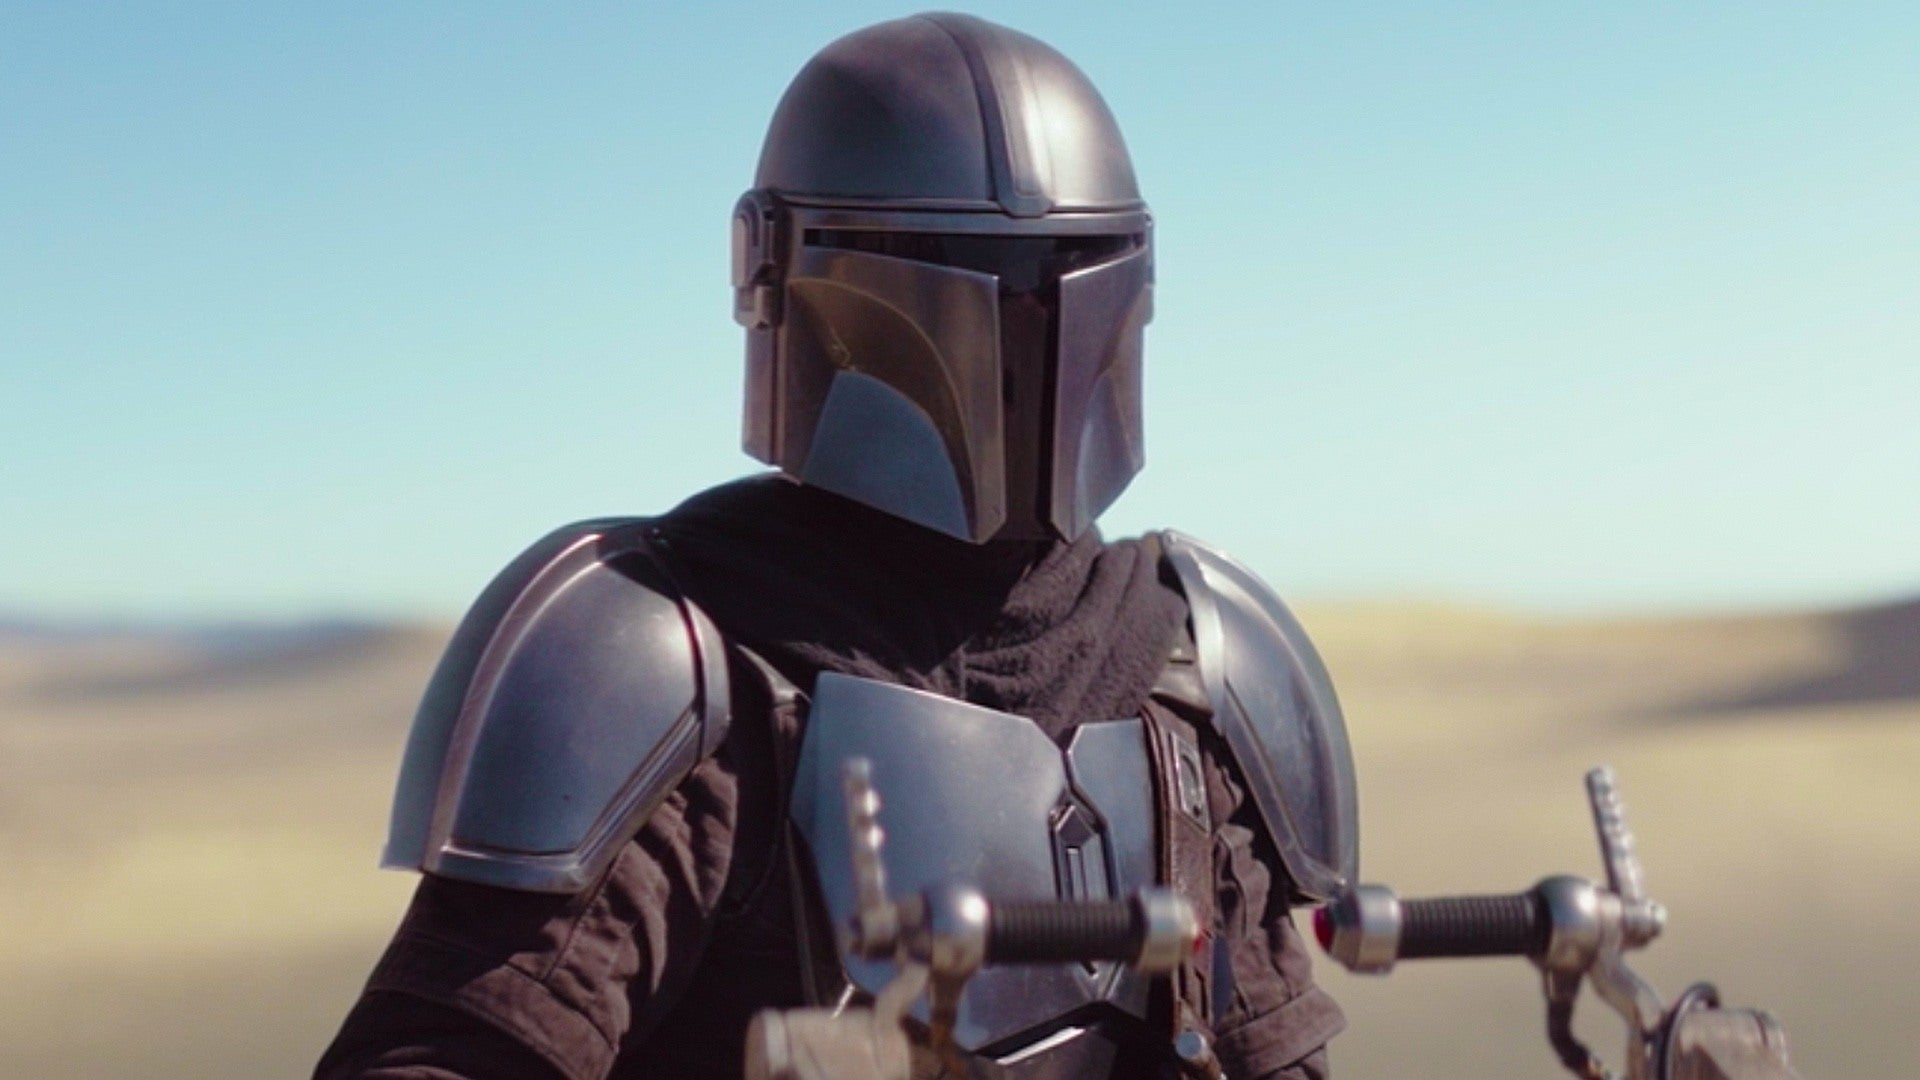 The Mandalorian Season 2 Trailer, Release Date, Cast, Plot Spoilers and Disney Plus Spin-offs